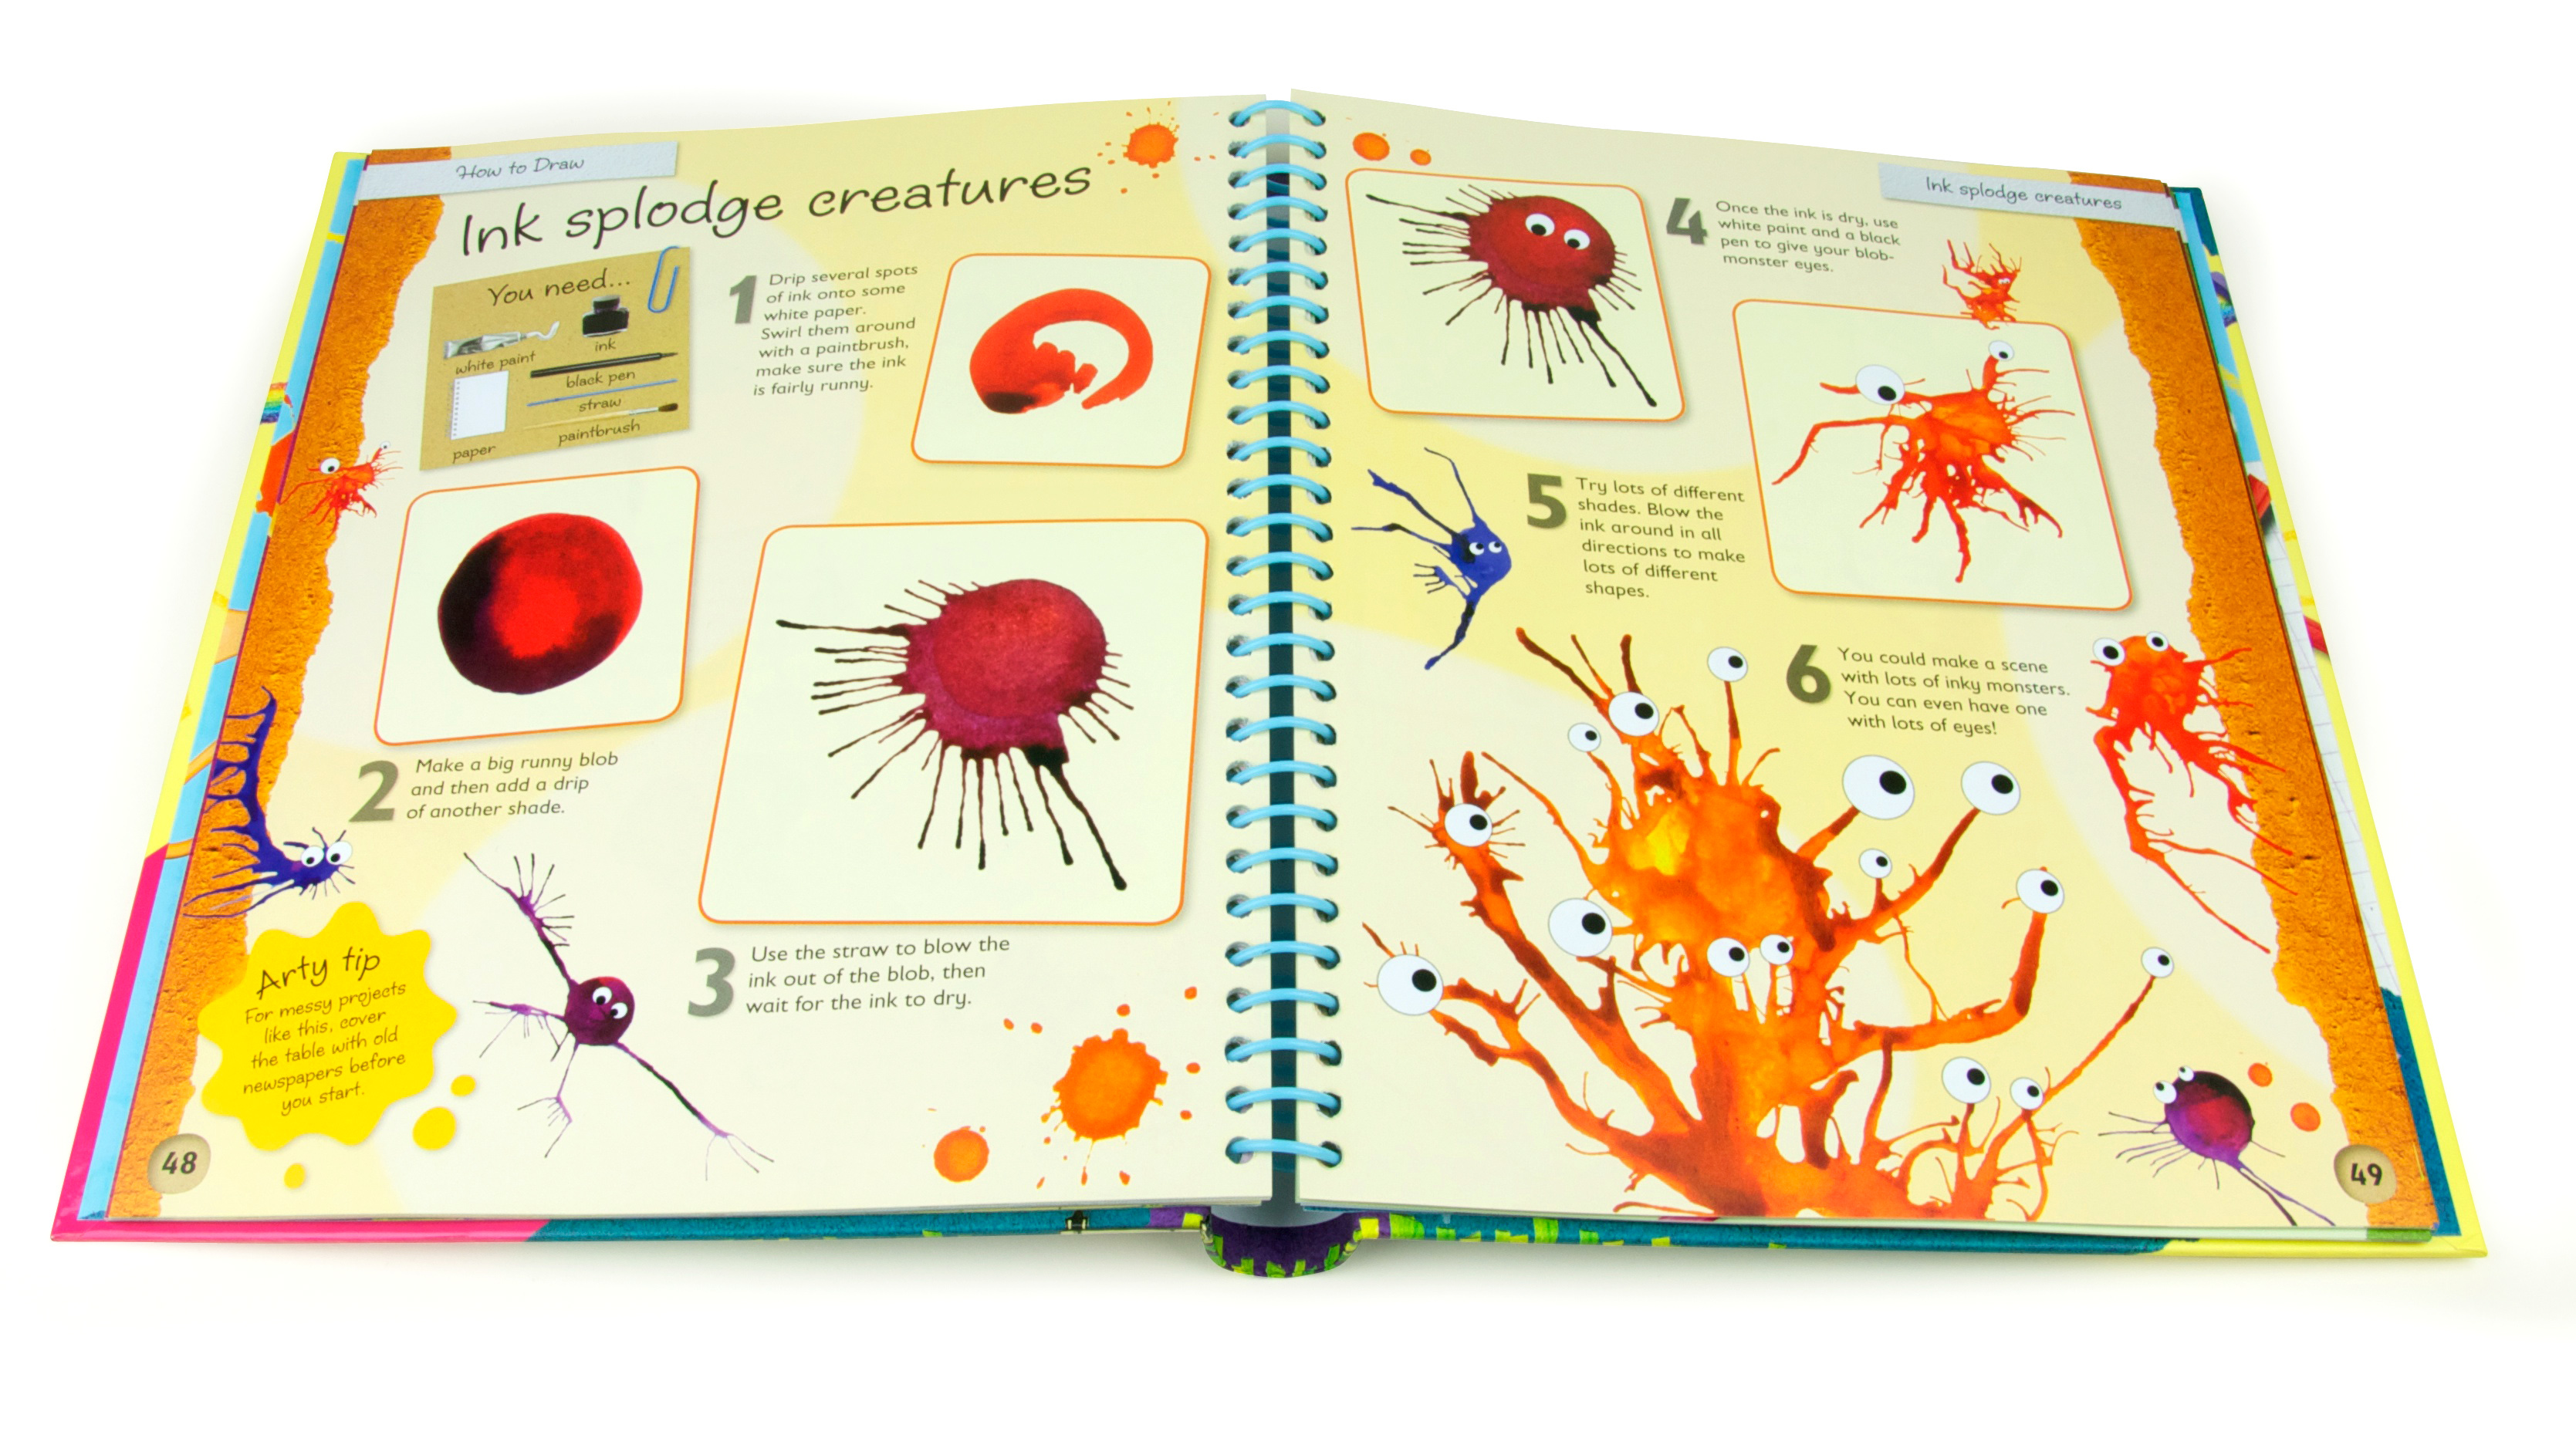 Interior spread from how to Draw, a kids art and craft book published by igloo books and Green Android publishing and designed and illustrated by fiona gowen. This page features ink splat monsters.